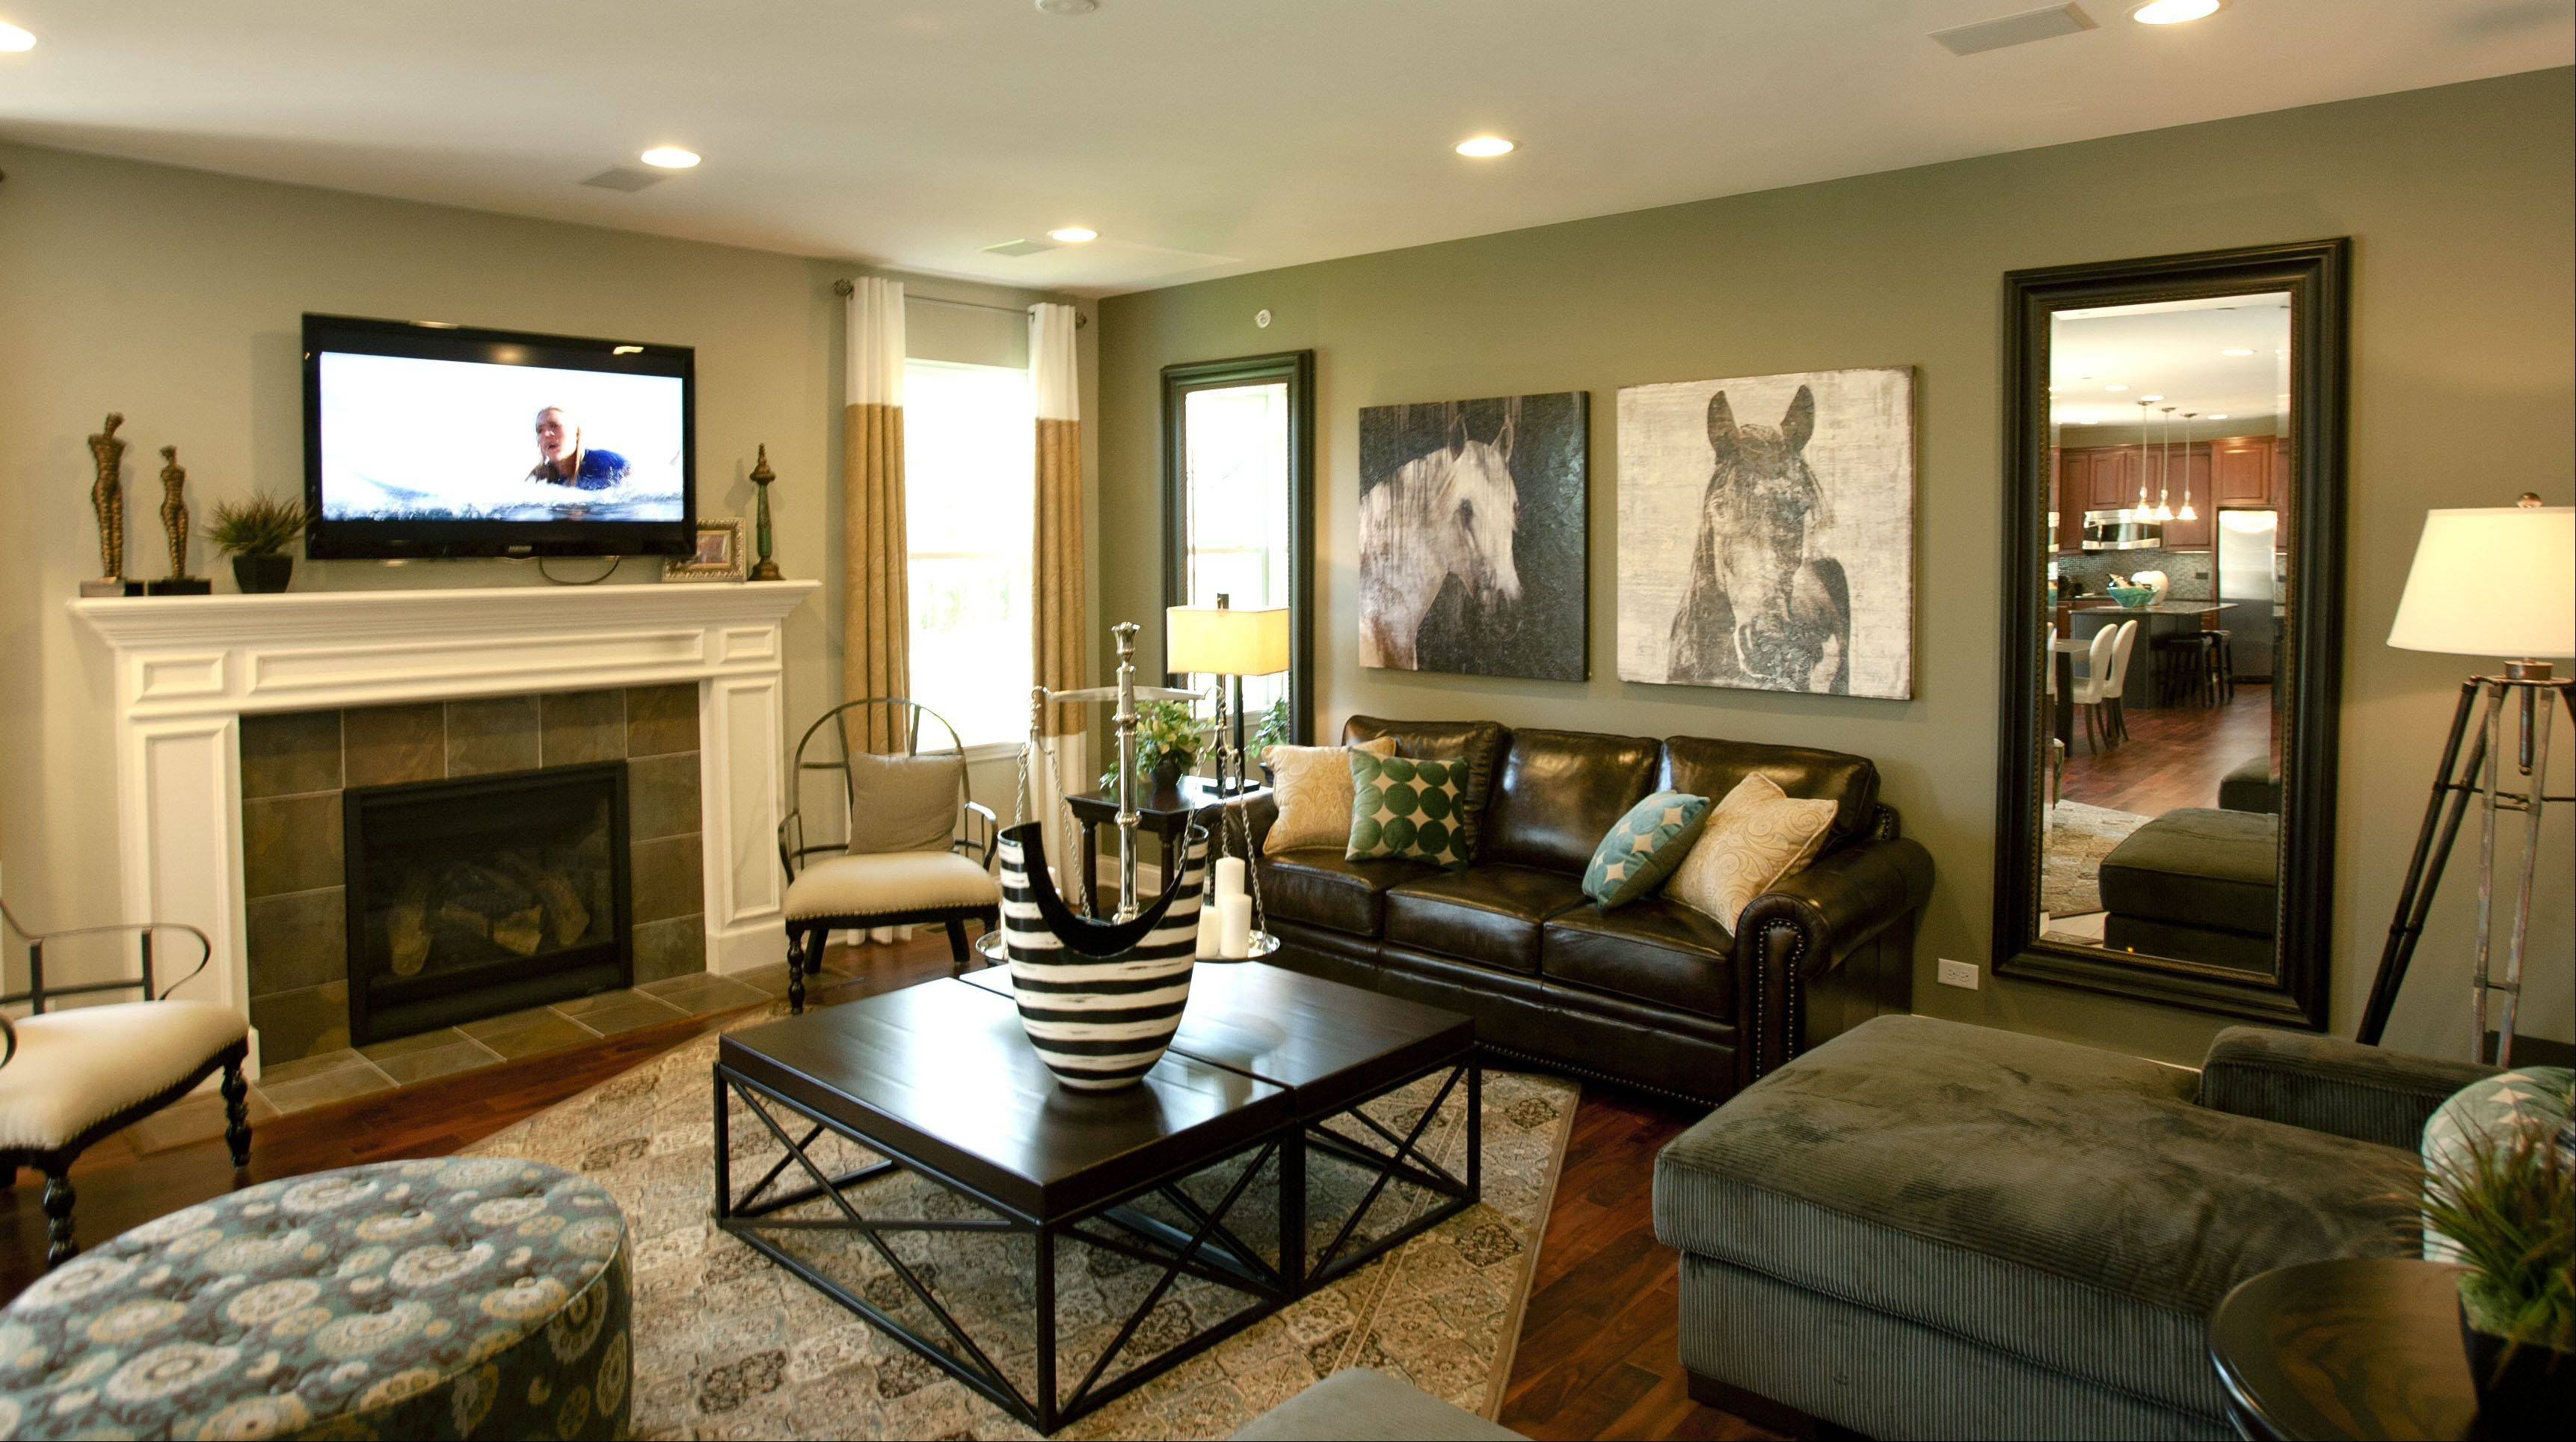 An array of seating in the living room includes a leather sofa with pictures of horses above and mirrors on either side.